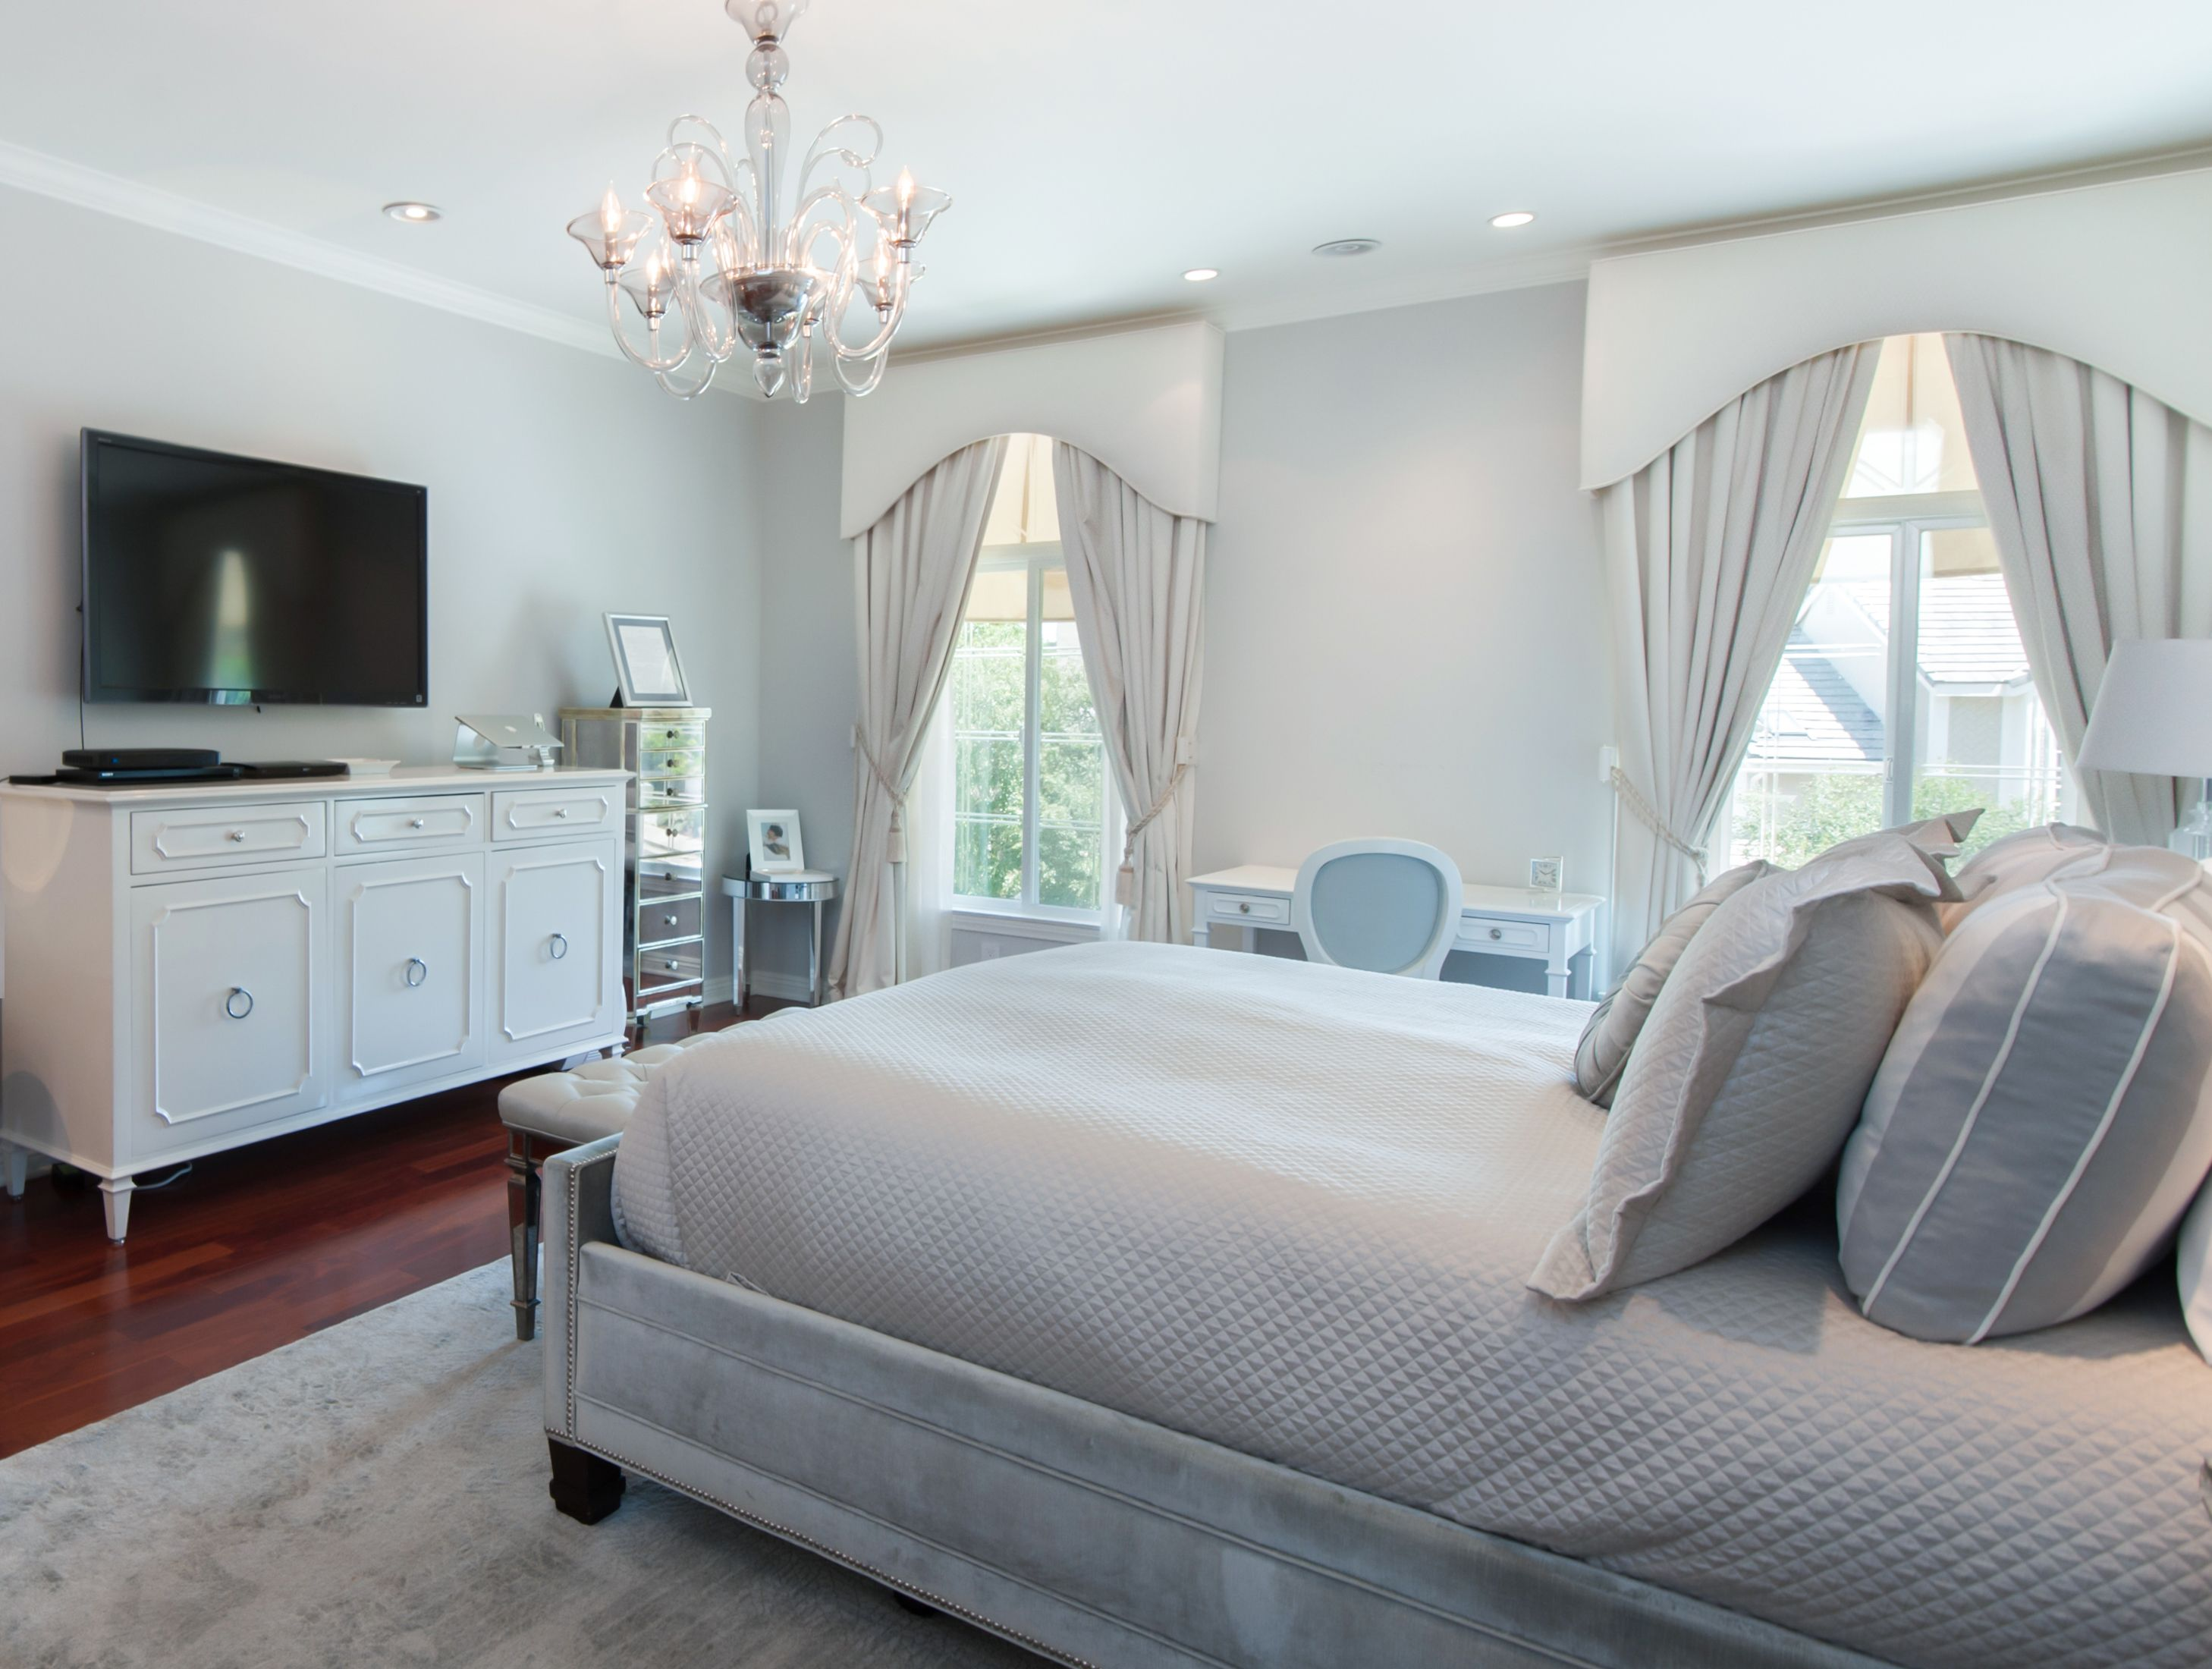 Carol Nitchman of Grace Home Furnishings worked with her clients to decorate this lovely Beverly Hills home and it's now for sale by Michael Nourmand and Adam Sires of Nourmand & Associates.